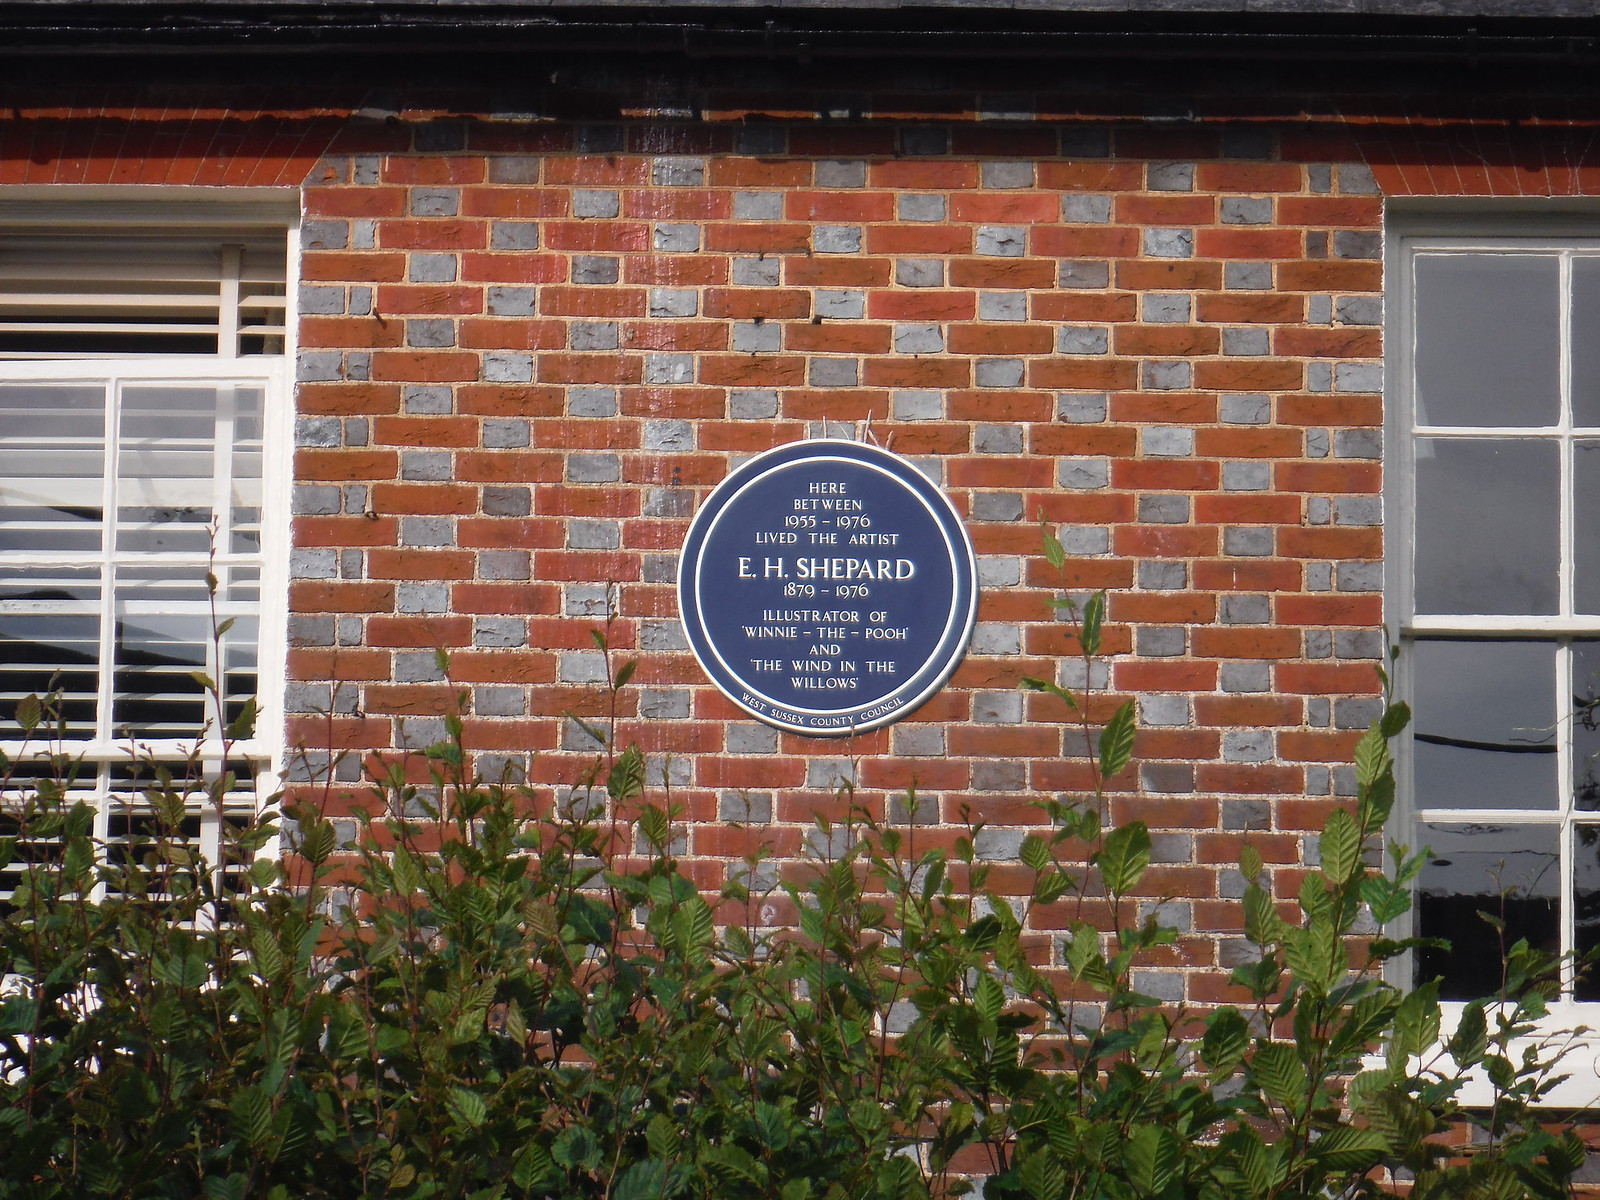 House where E.H. Shepard lived, Lodsworth SWC Walk 217 Midhurst Way: Arundel to Midhurst